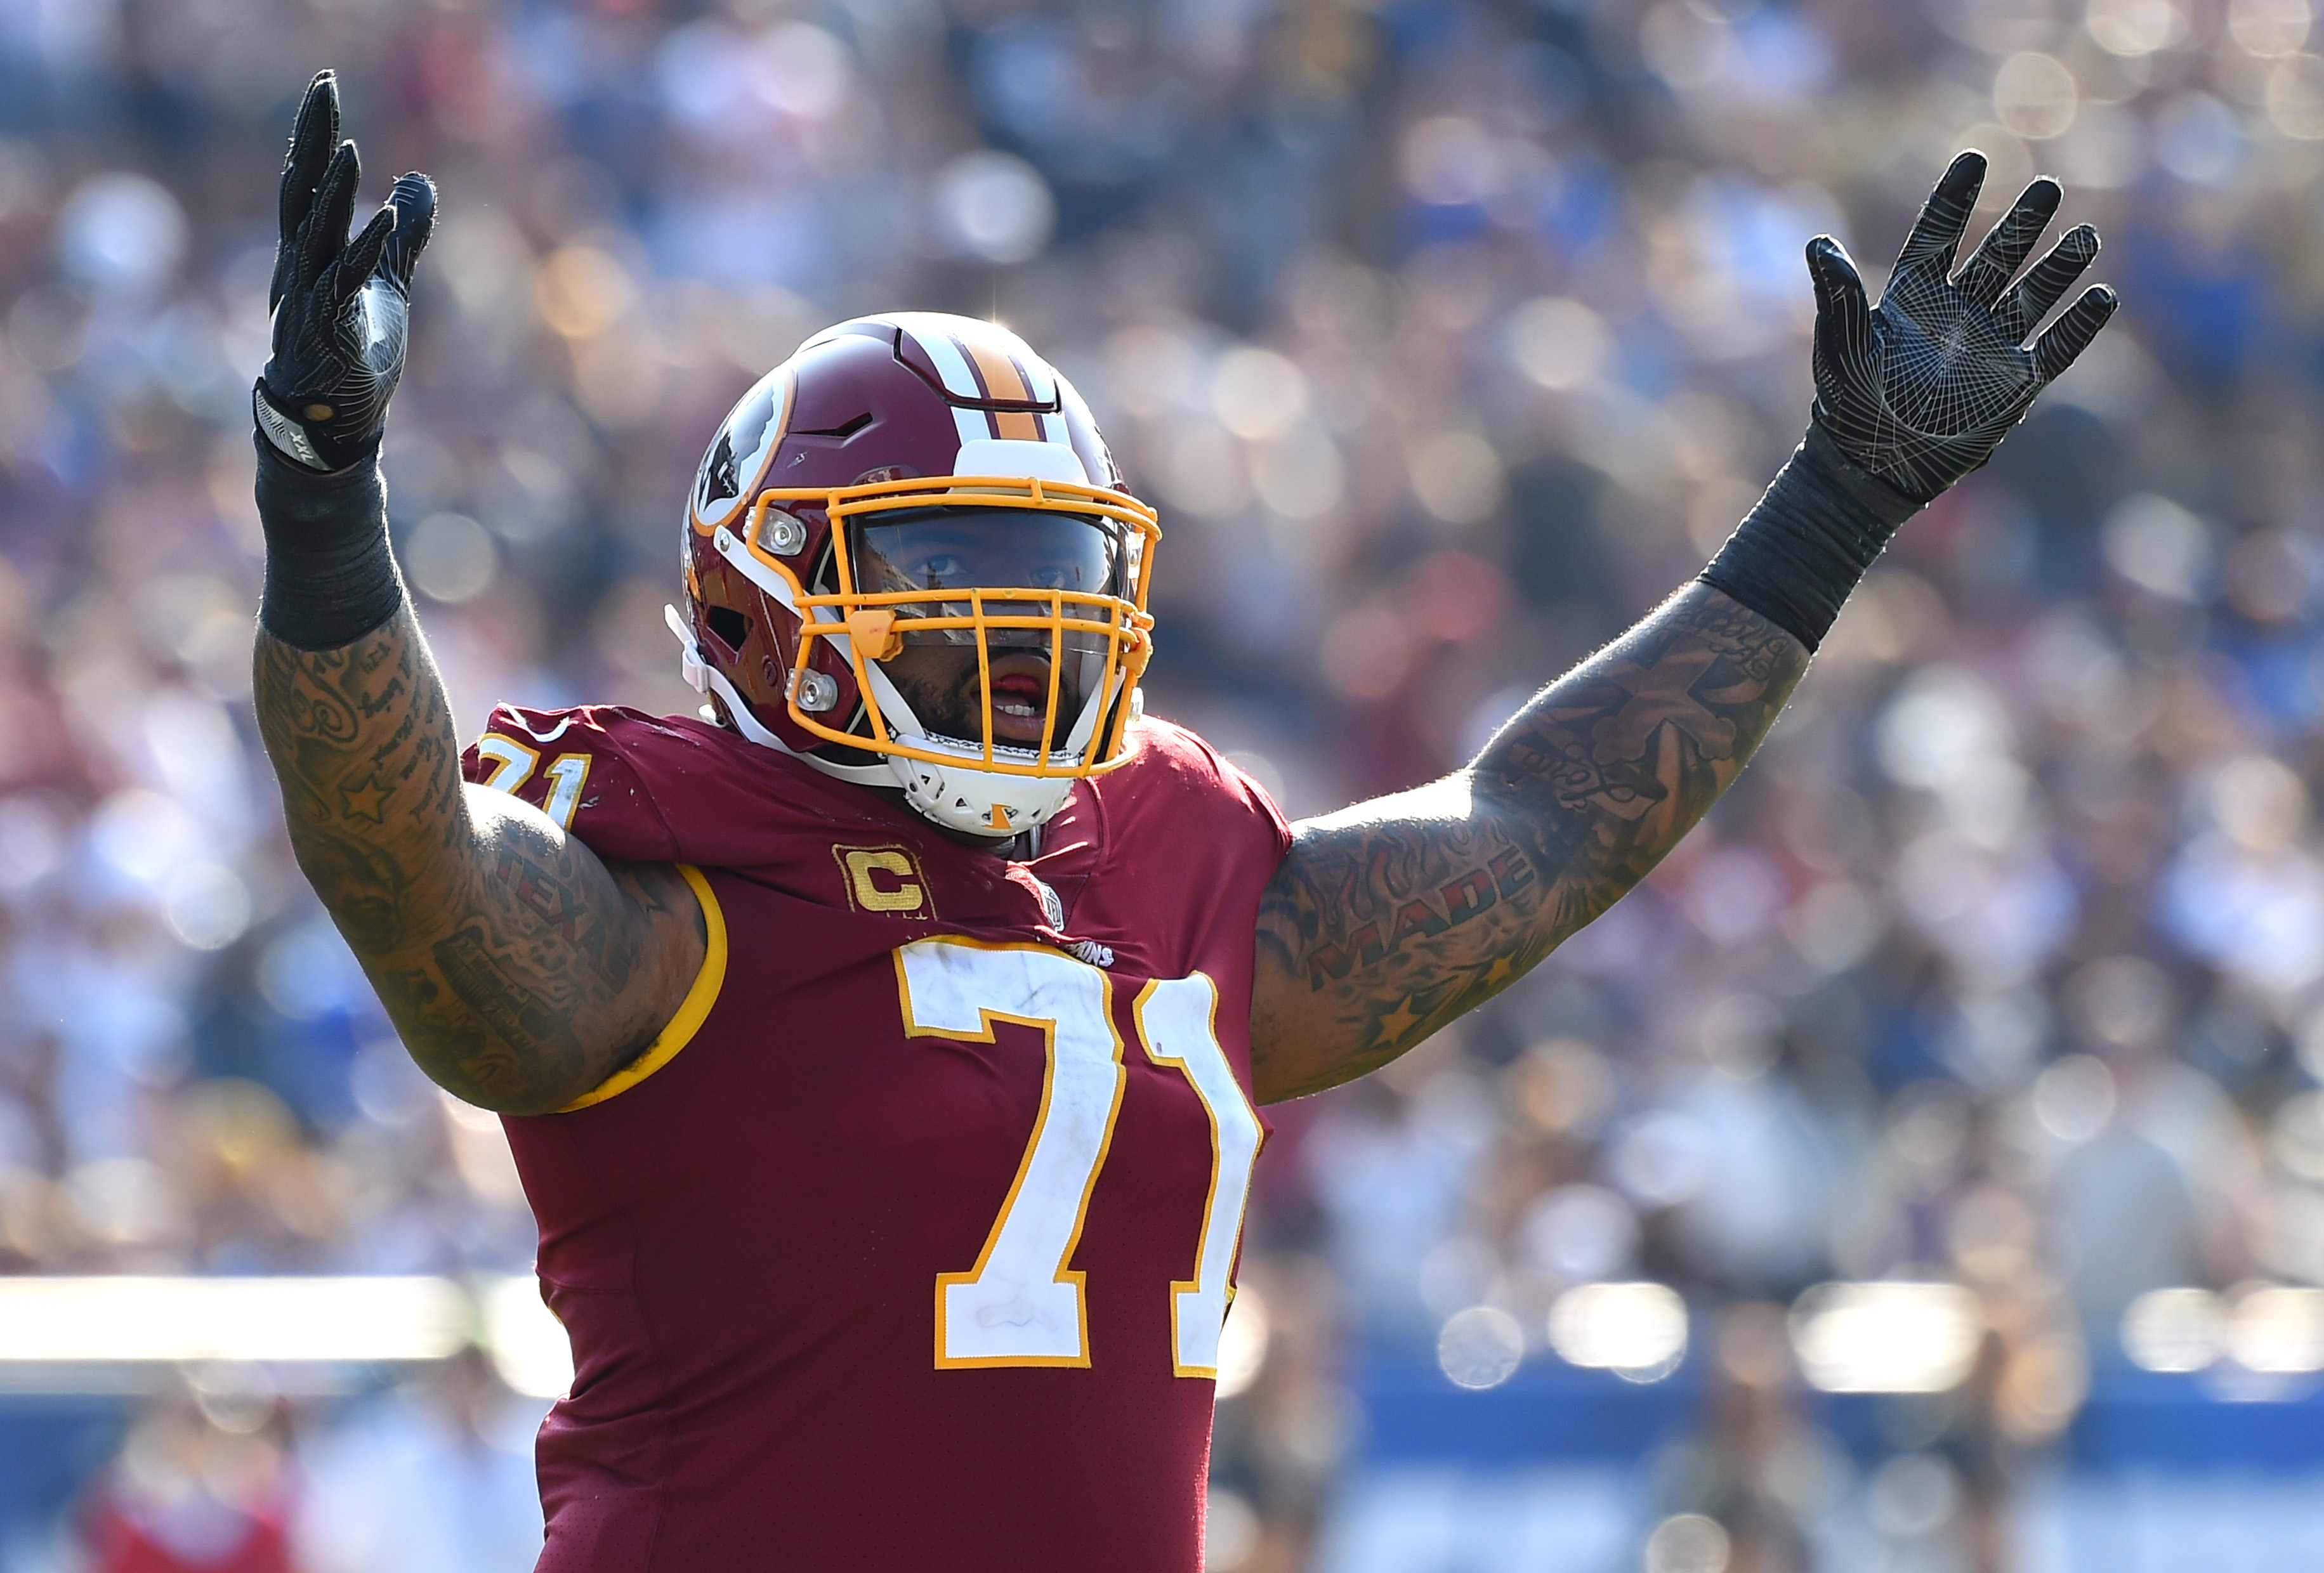 Redskins Trent Williams also known as Silverback takes us